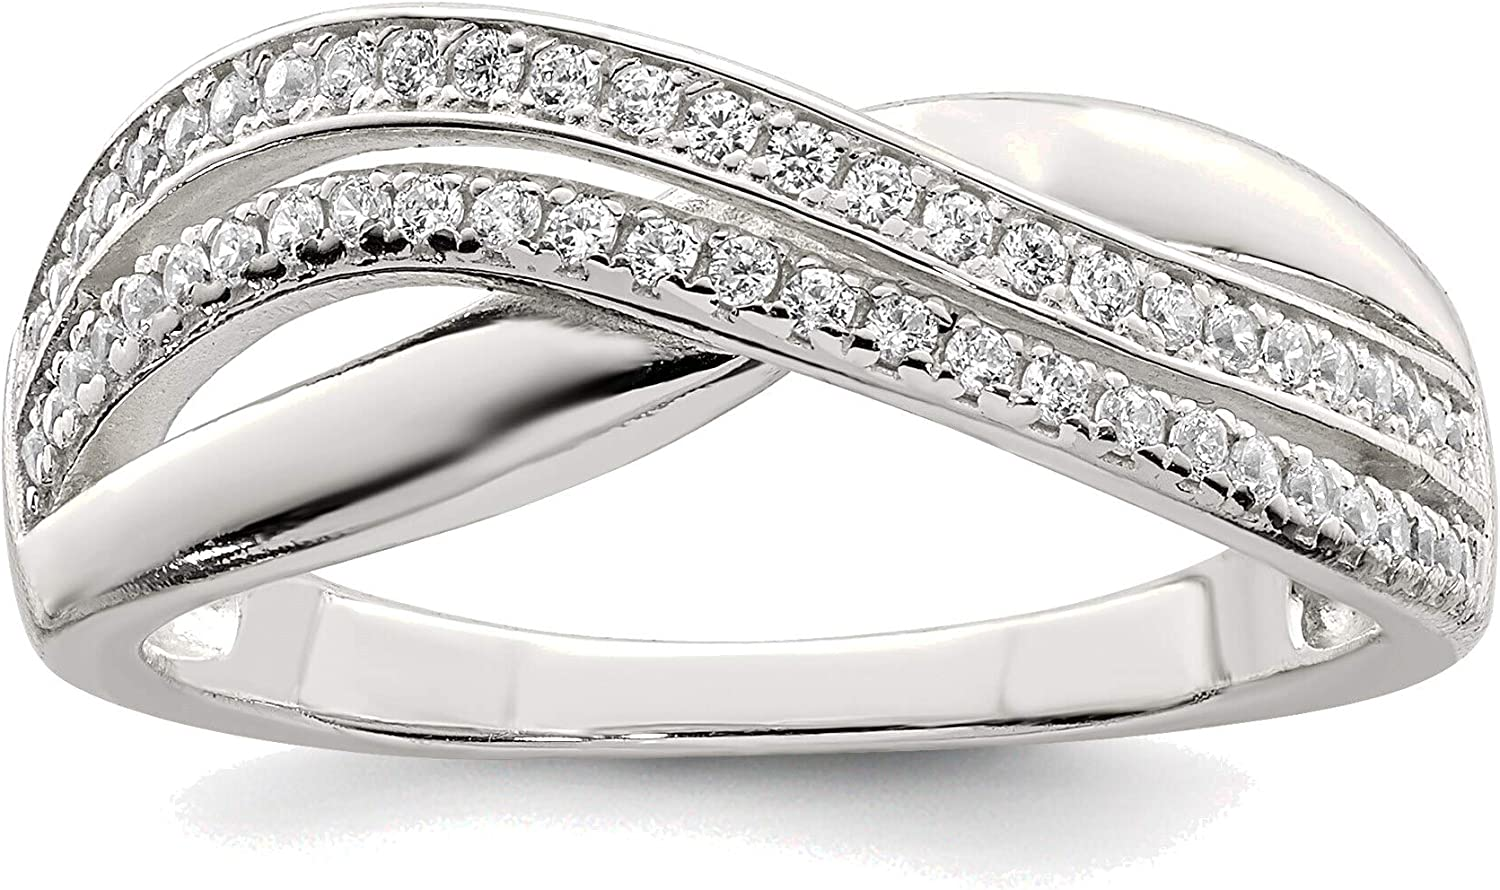 Bonyak Jewelry Solid Sterling Outlet SALE Silver and in 6 Size Regular discount Ring CZ